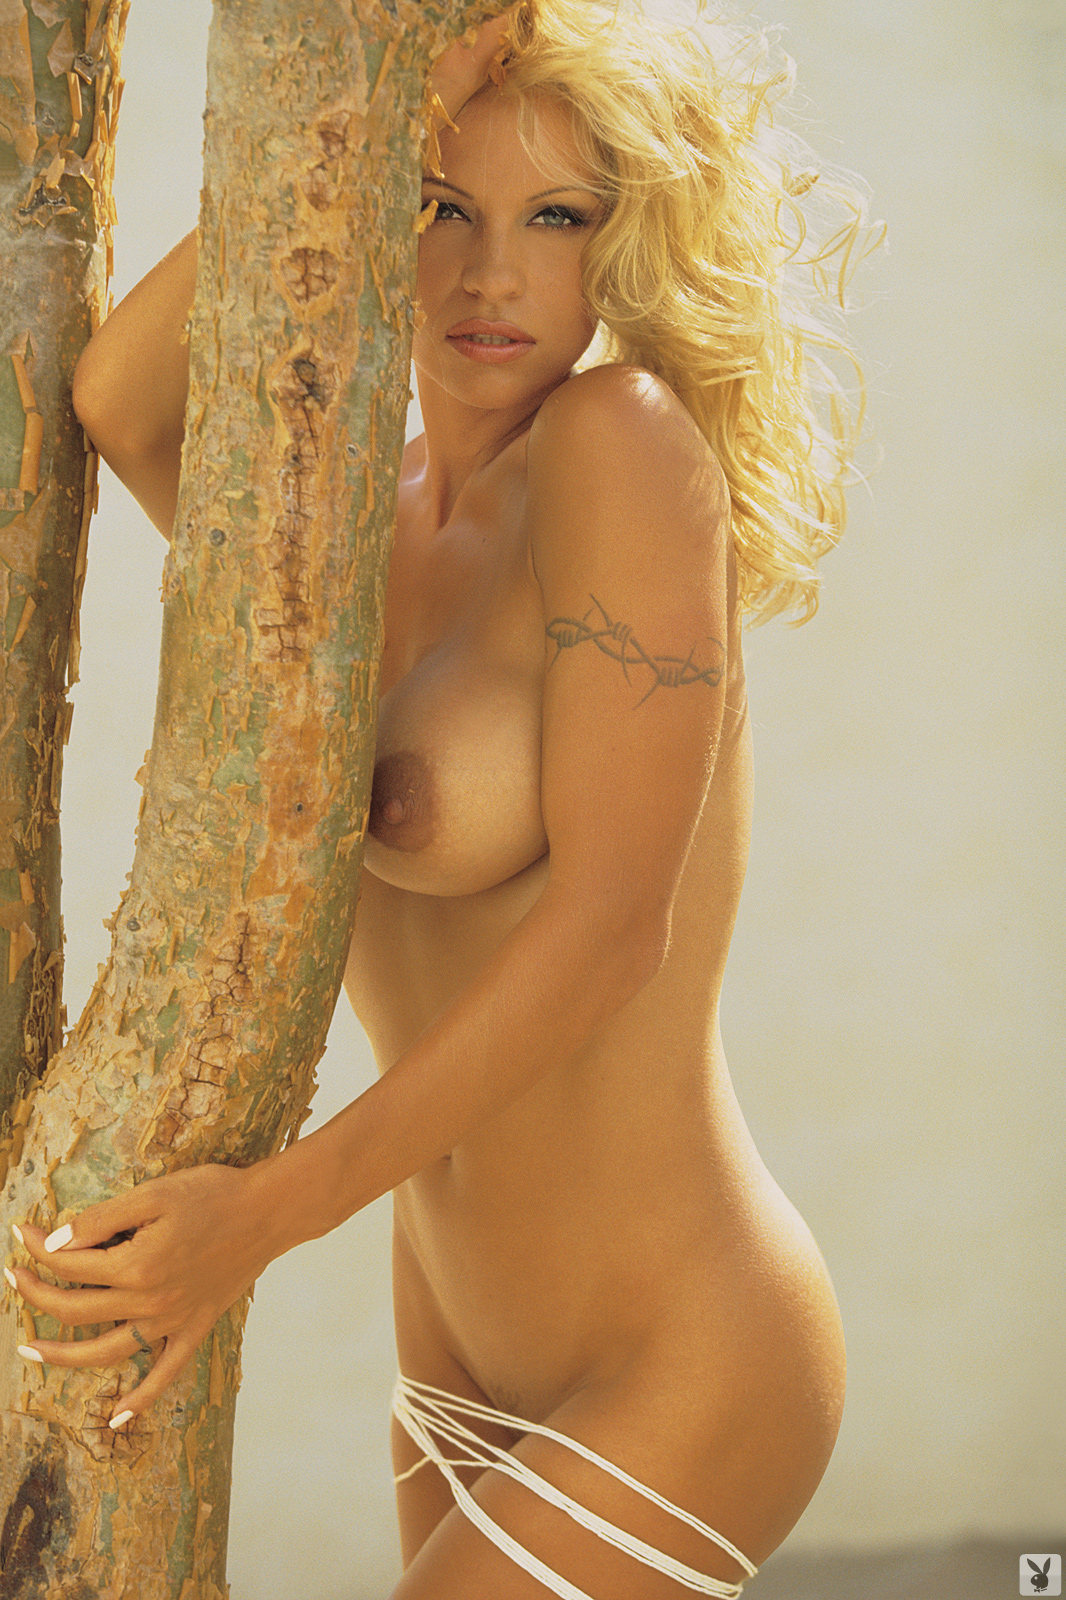 from Paxton pam anderson naked in playboy